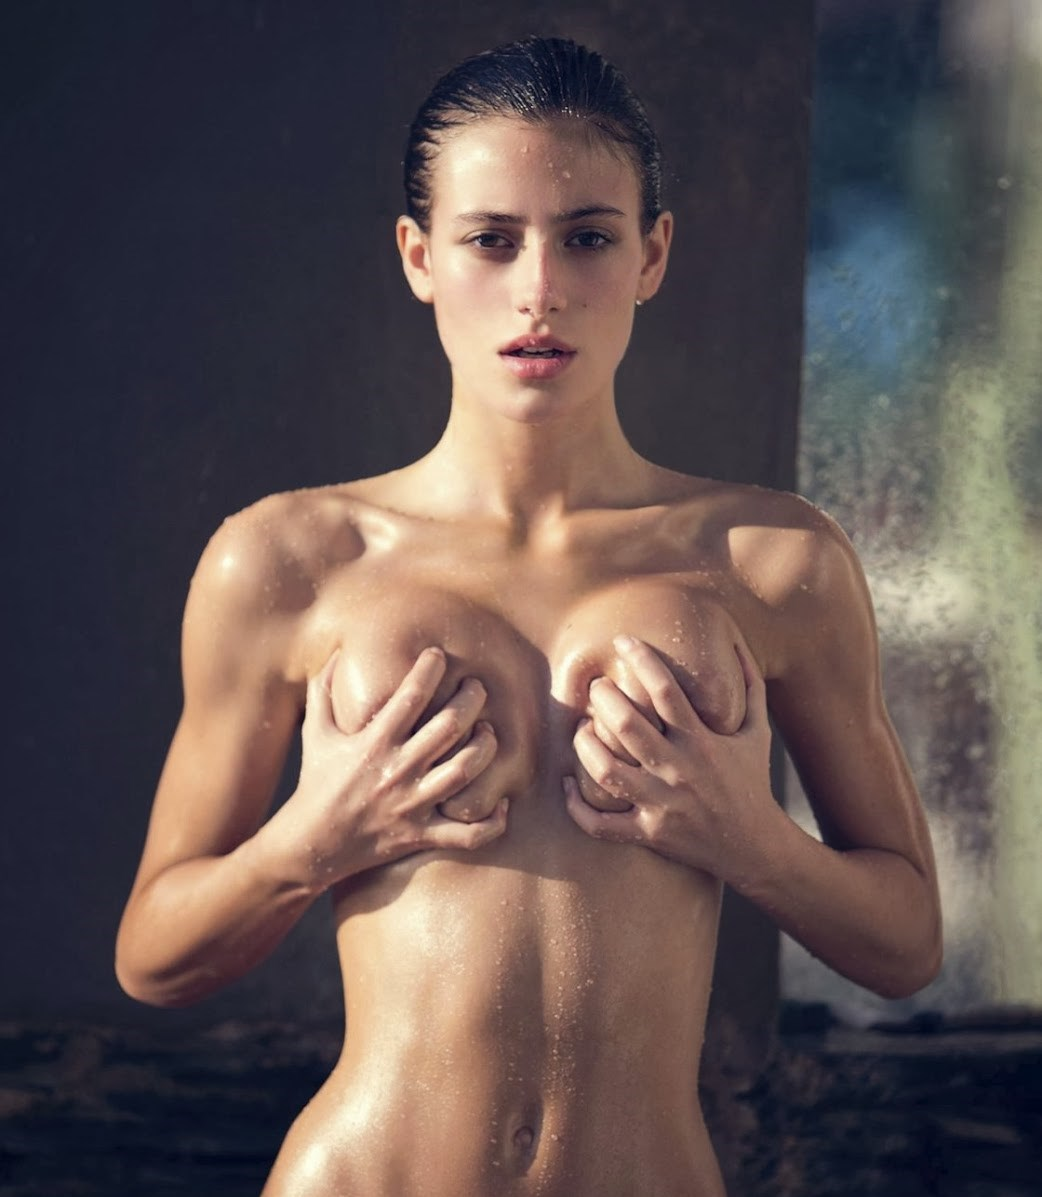 All females nude megapack by dave naked image